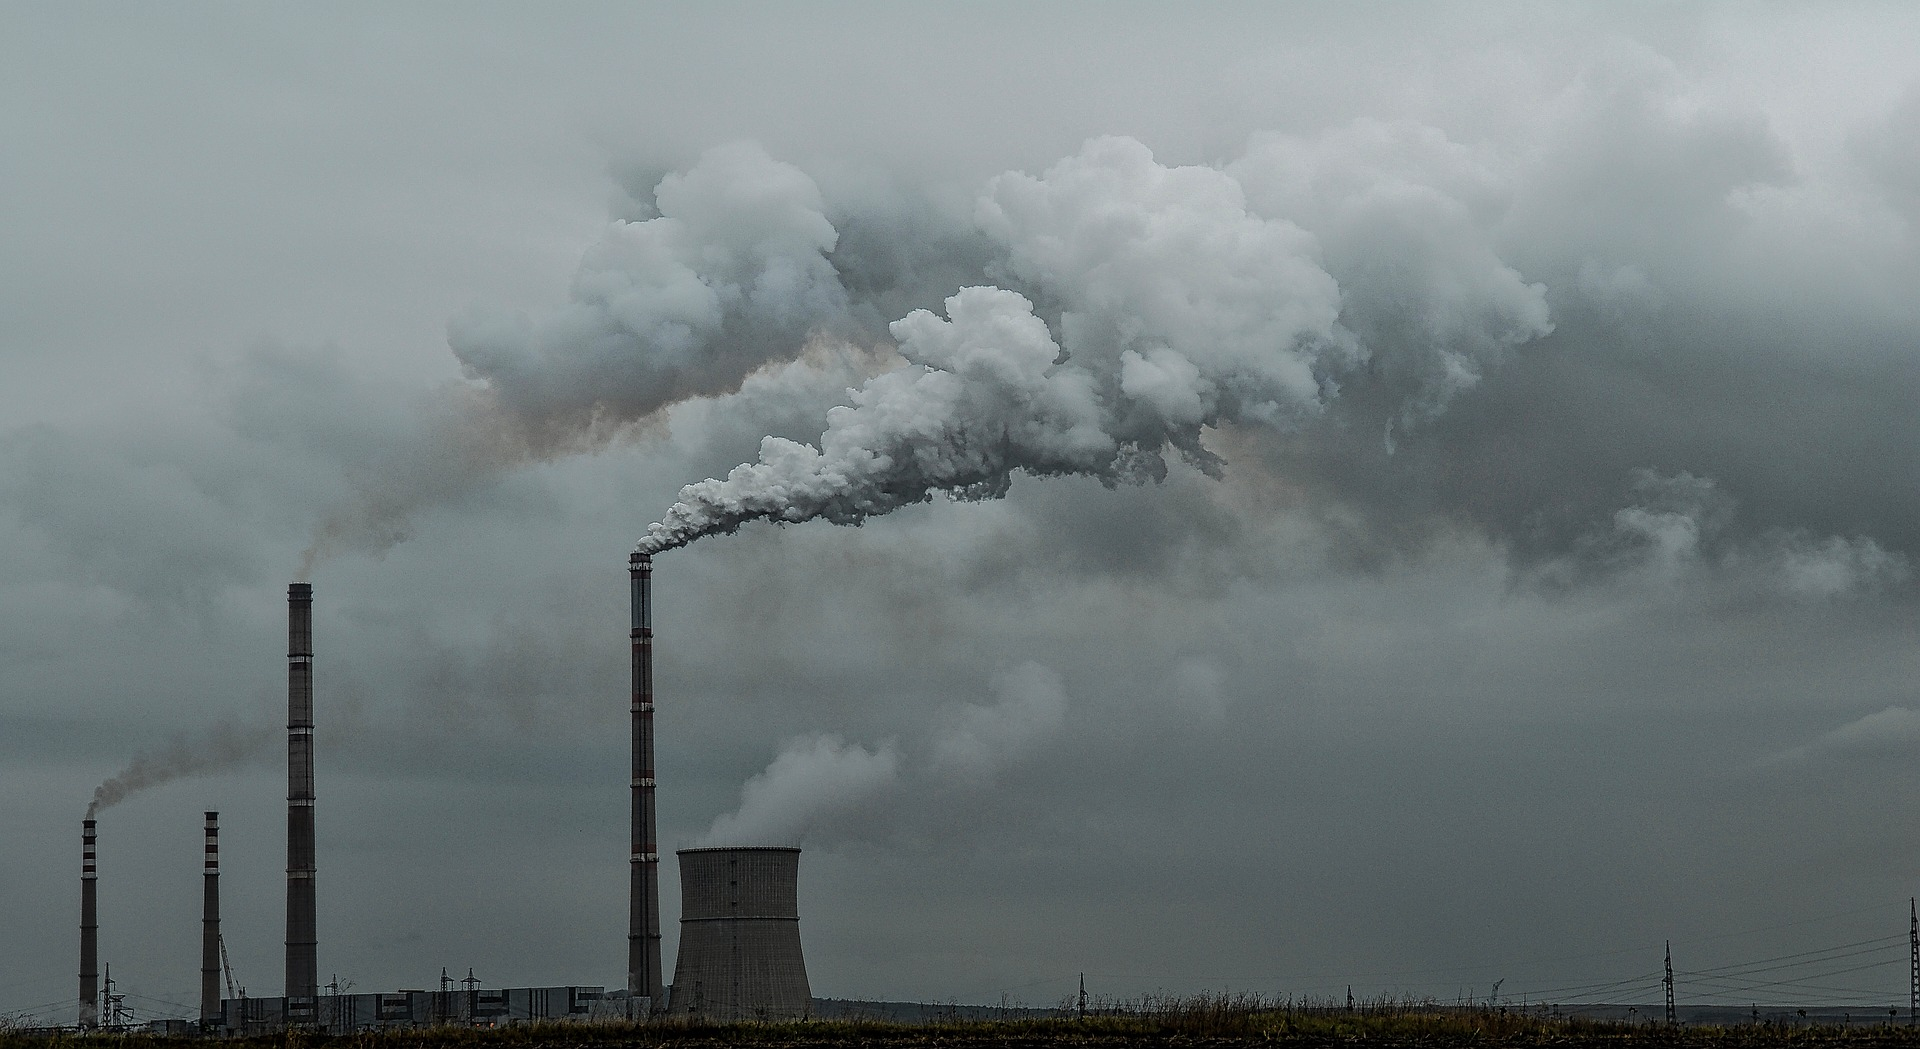 Not acting on climate change and environment threats could be more lethal than the coro-demic